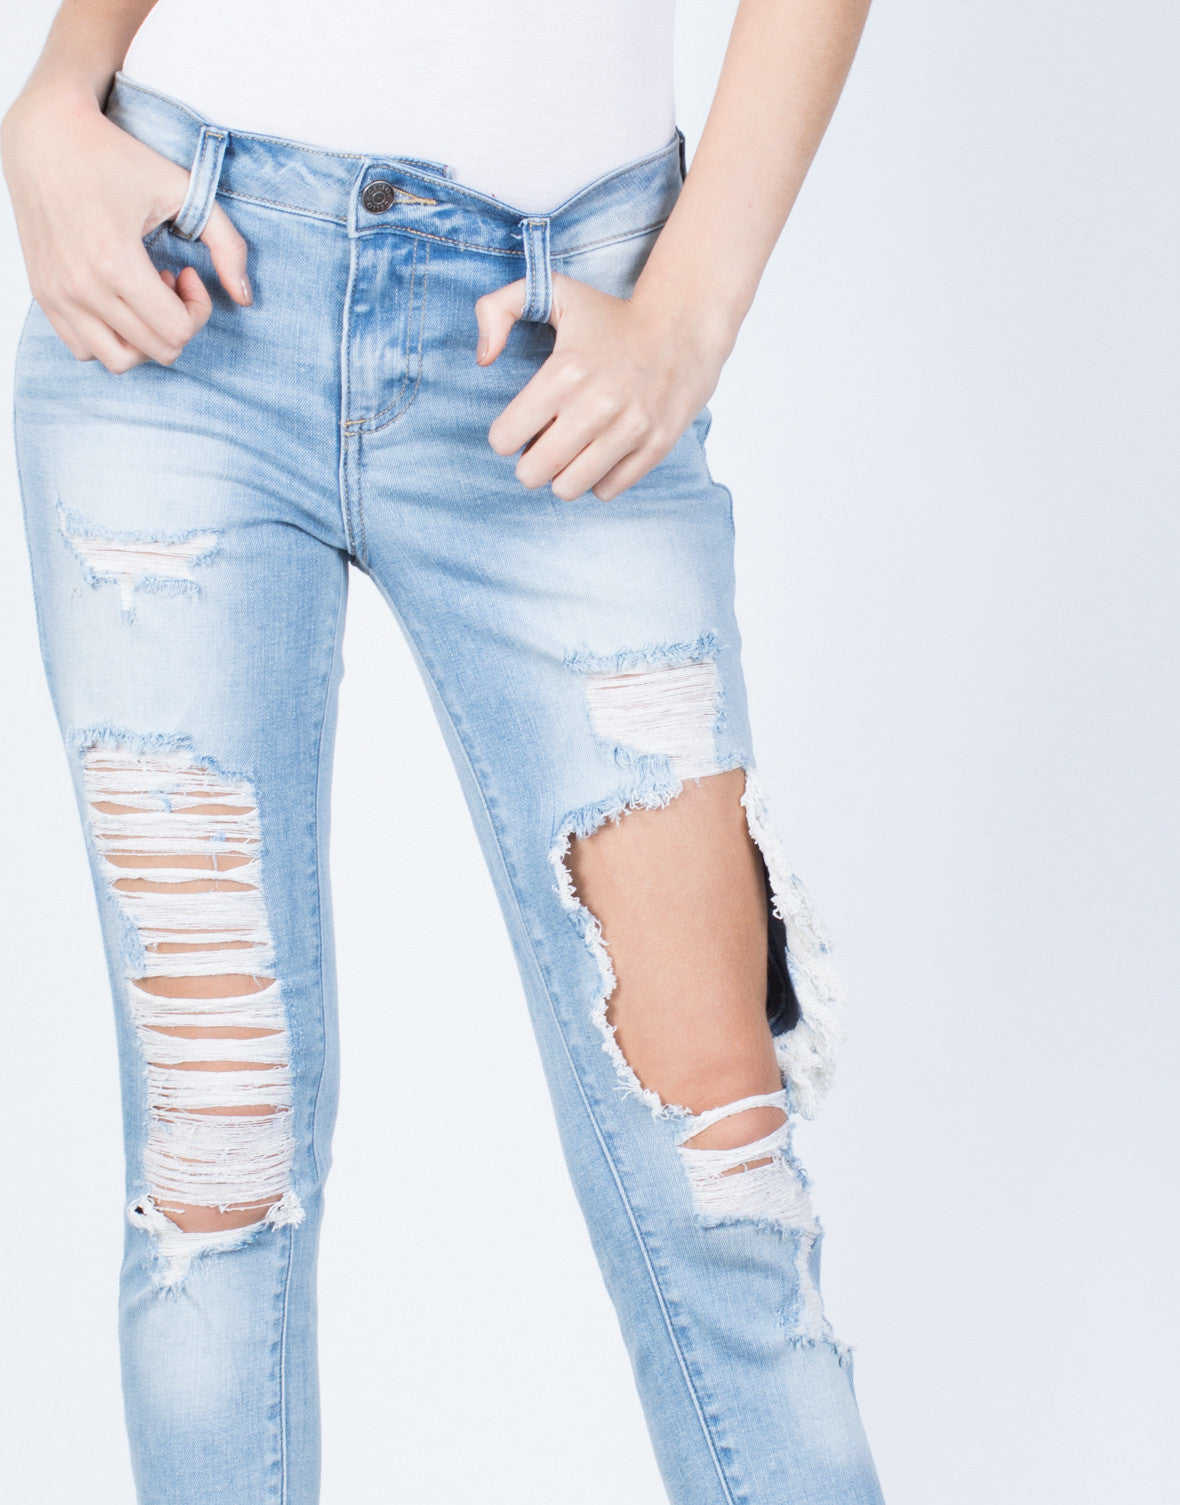 Detail of Worn and Torn Jeans